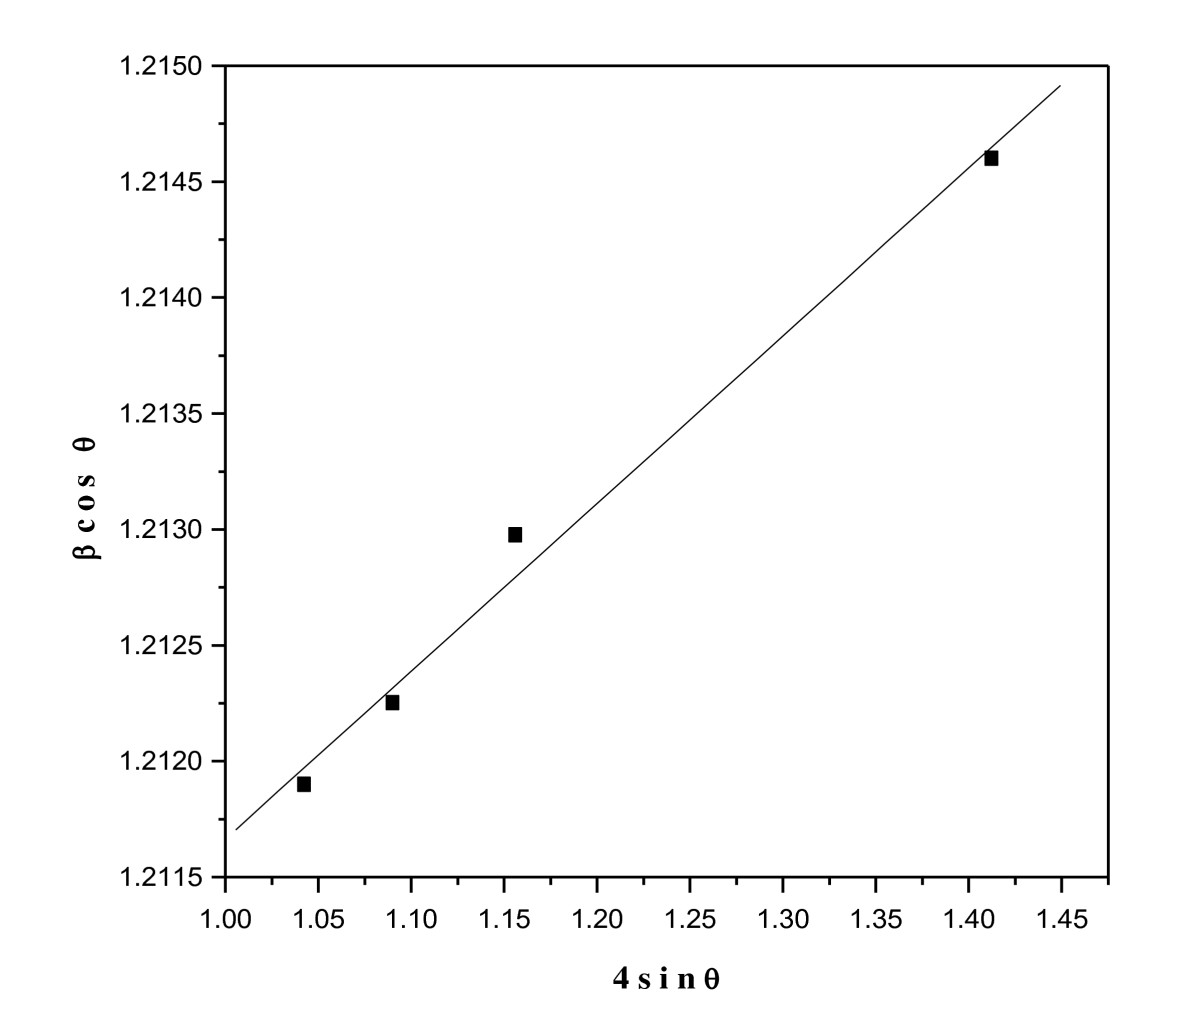 http://static-content.springer.com/image/art%3A10.1186%2F1556-276X-6-499/MediaObjects/11671_2011_Article_612_Fig2_HTML.jpg